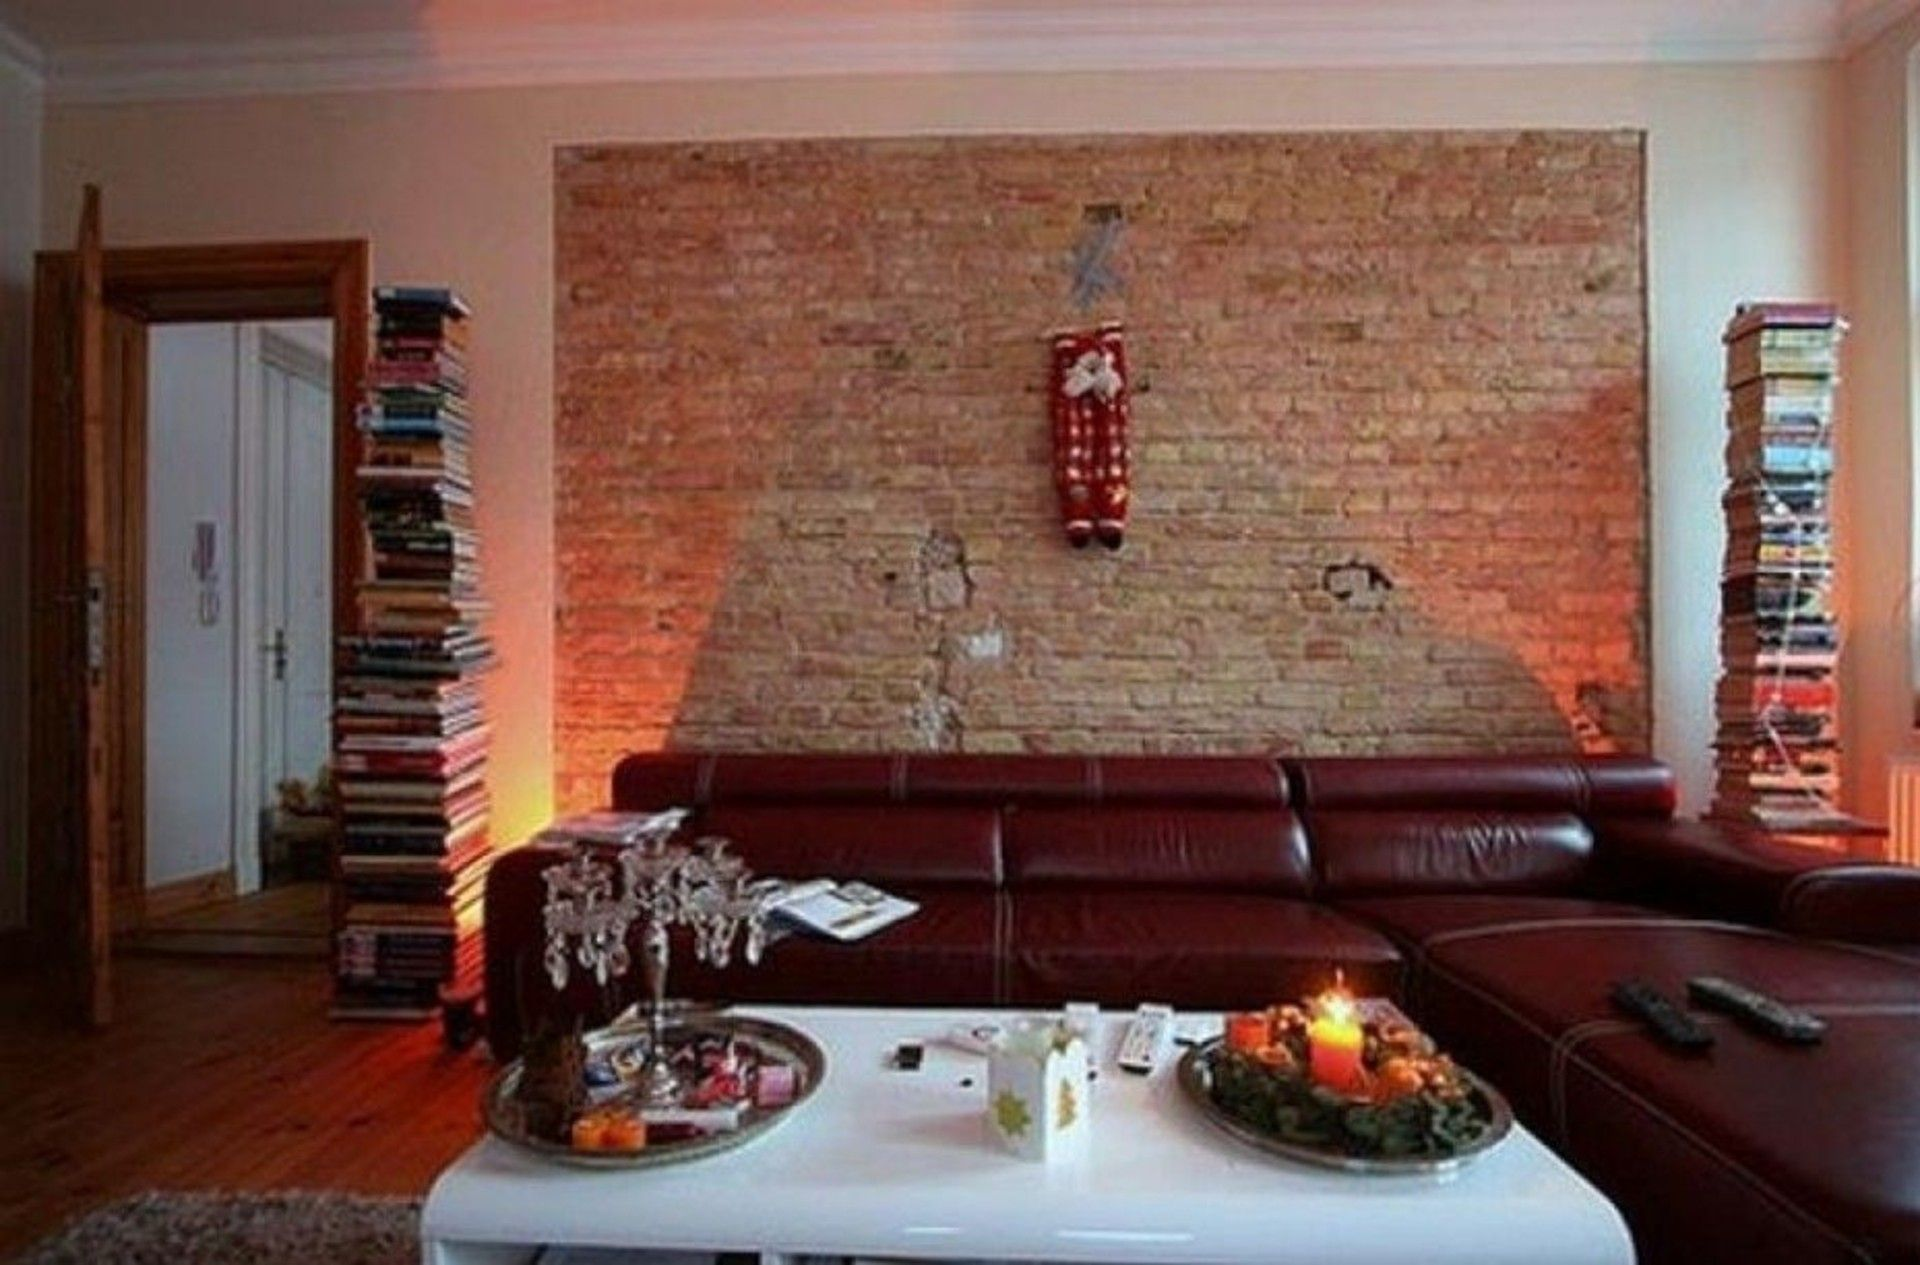 Incredible Bricks Wall Interior Design Ideas With Cream Brown Colors